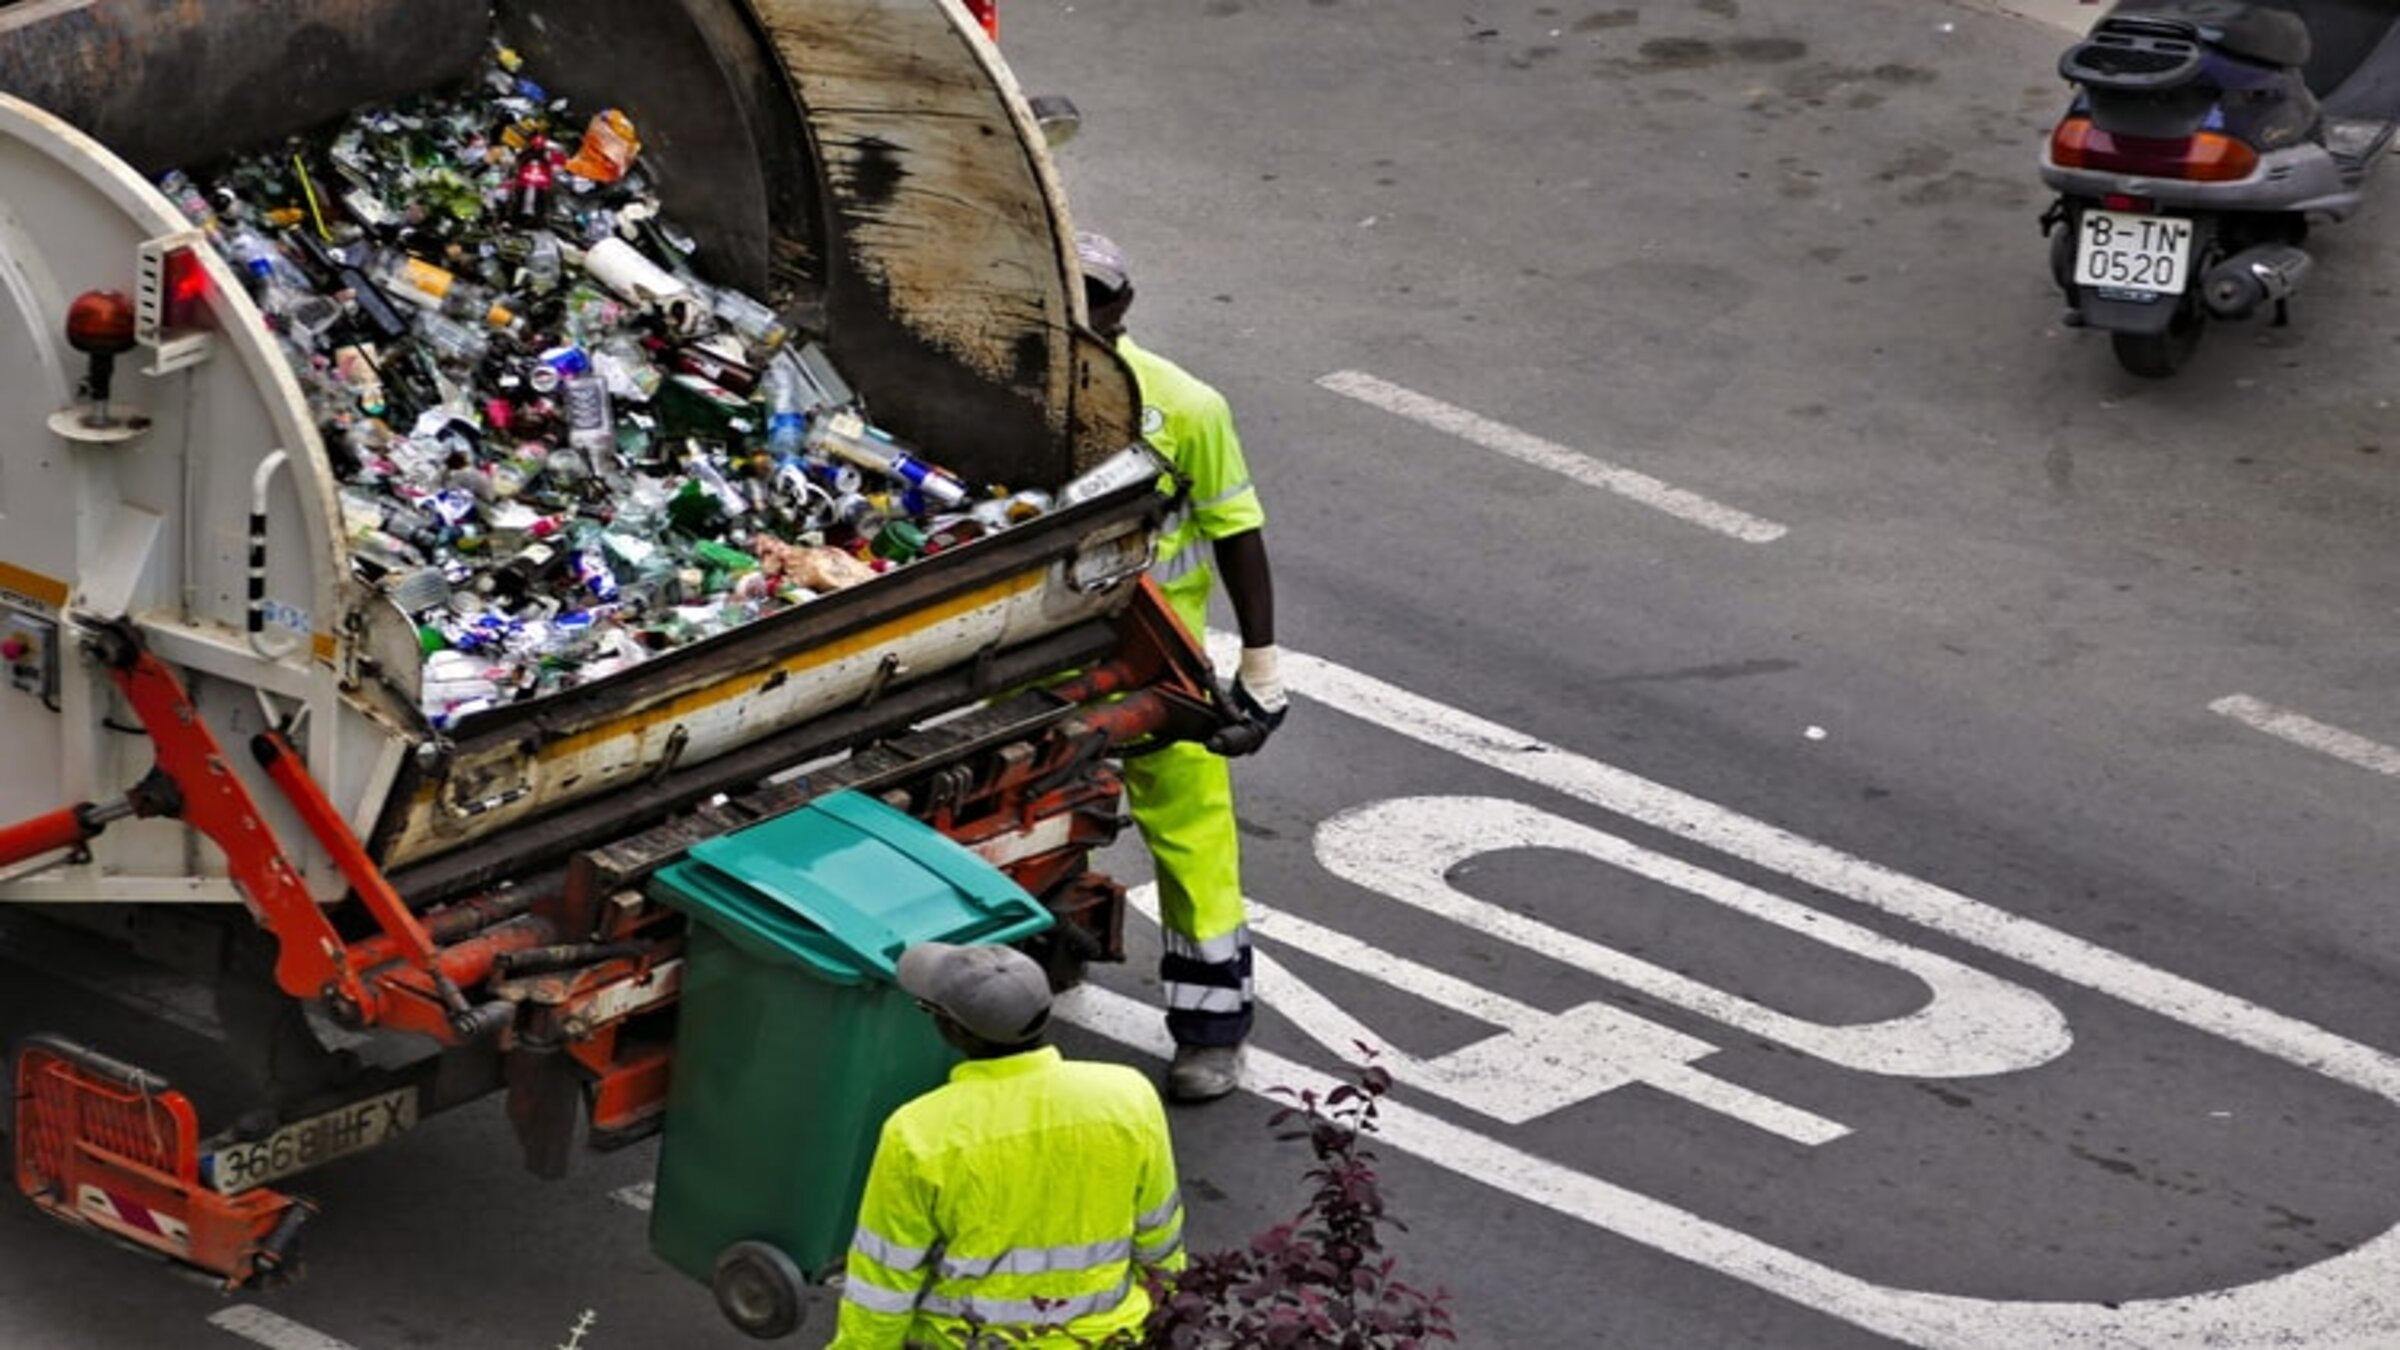 5 Important Facts about Recycling